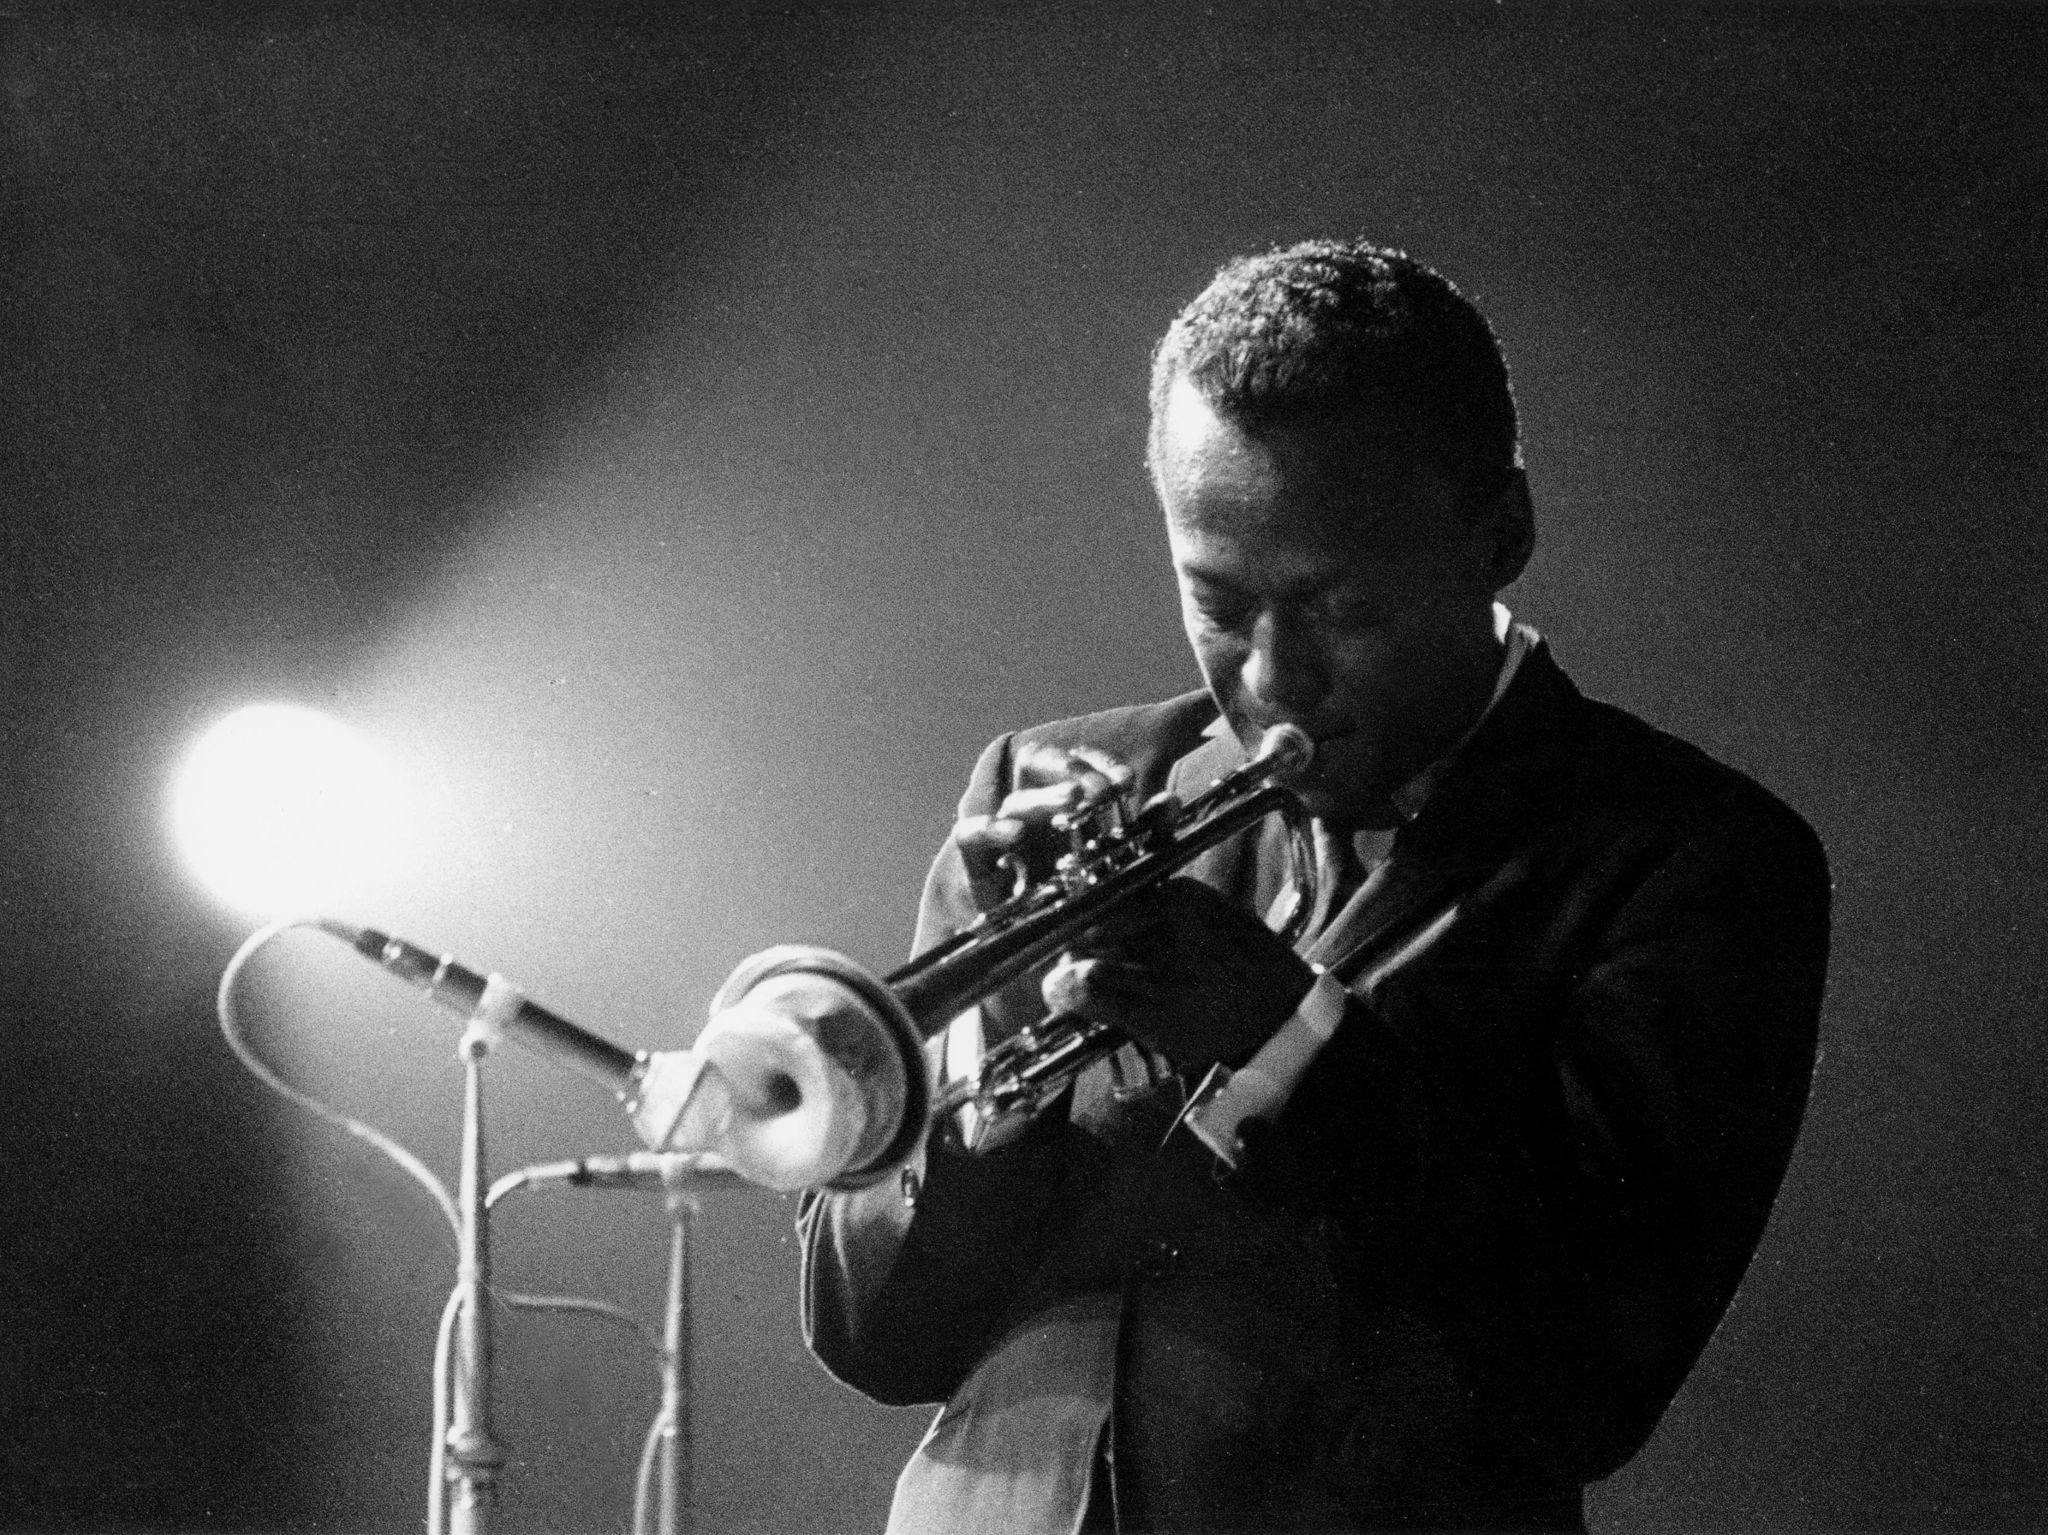 Miles Davis listening quiz for Edexcel GCSE Music with excerpts and answers